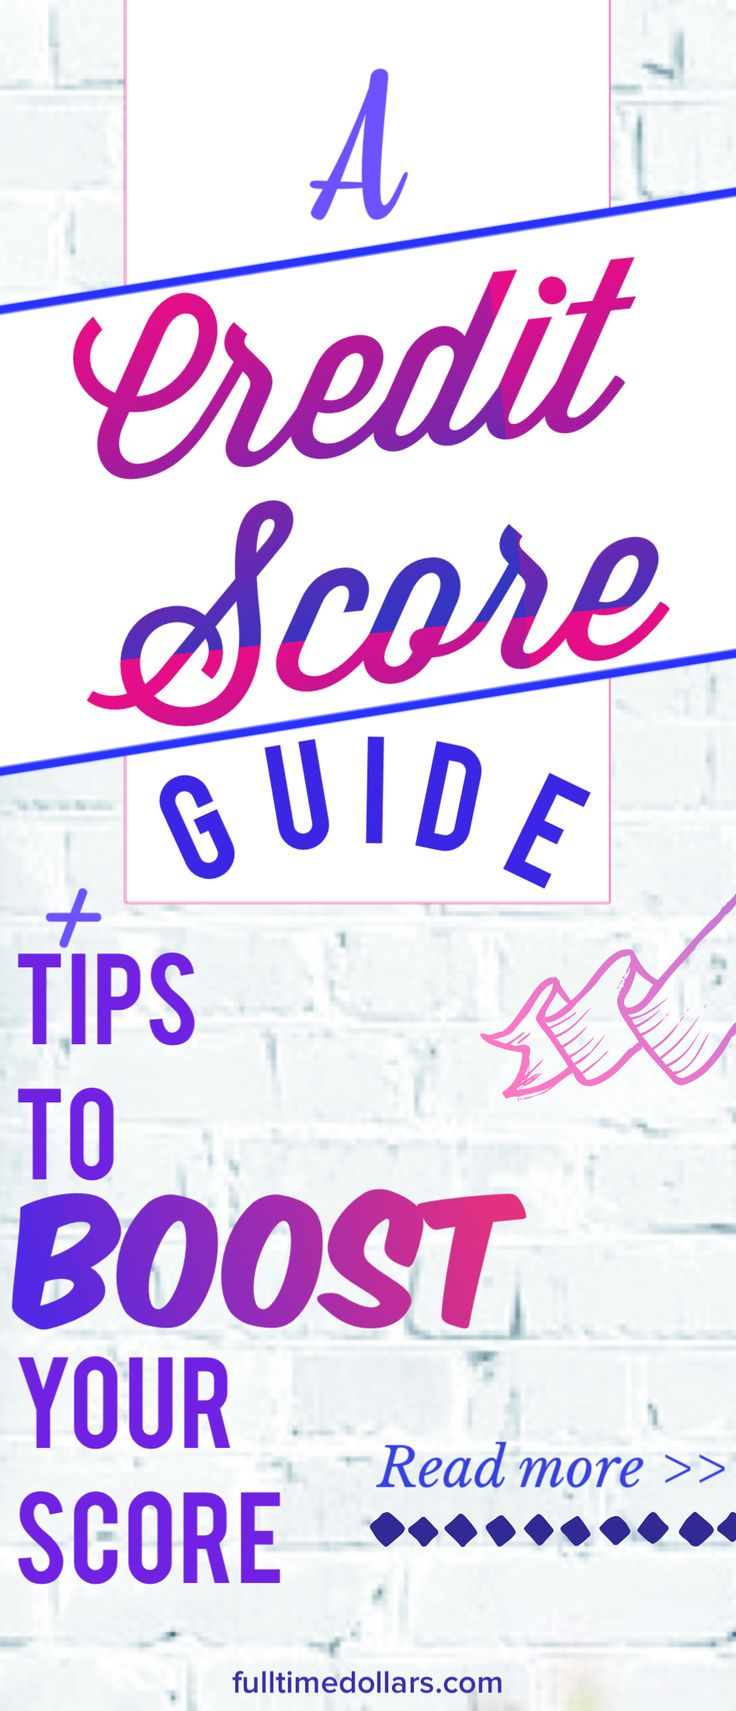 A guide to credit scores plus tips on how to boost my score? Count me in! Article via @fulltimedollars #creditscore #boostcreditscore #howtosavemoney